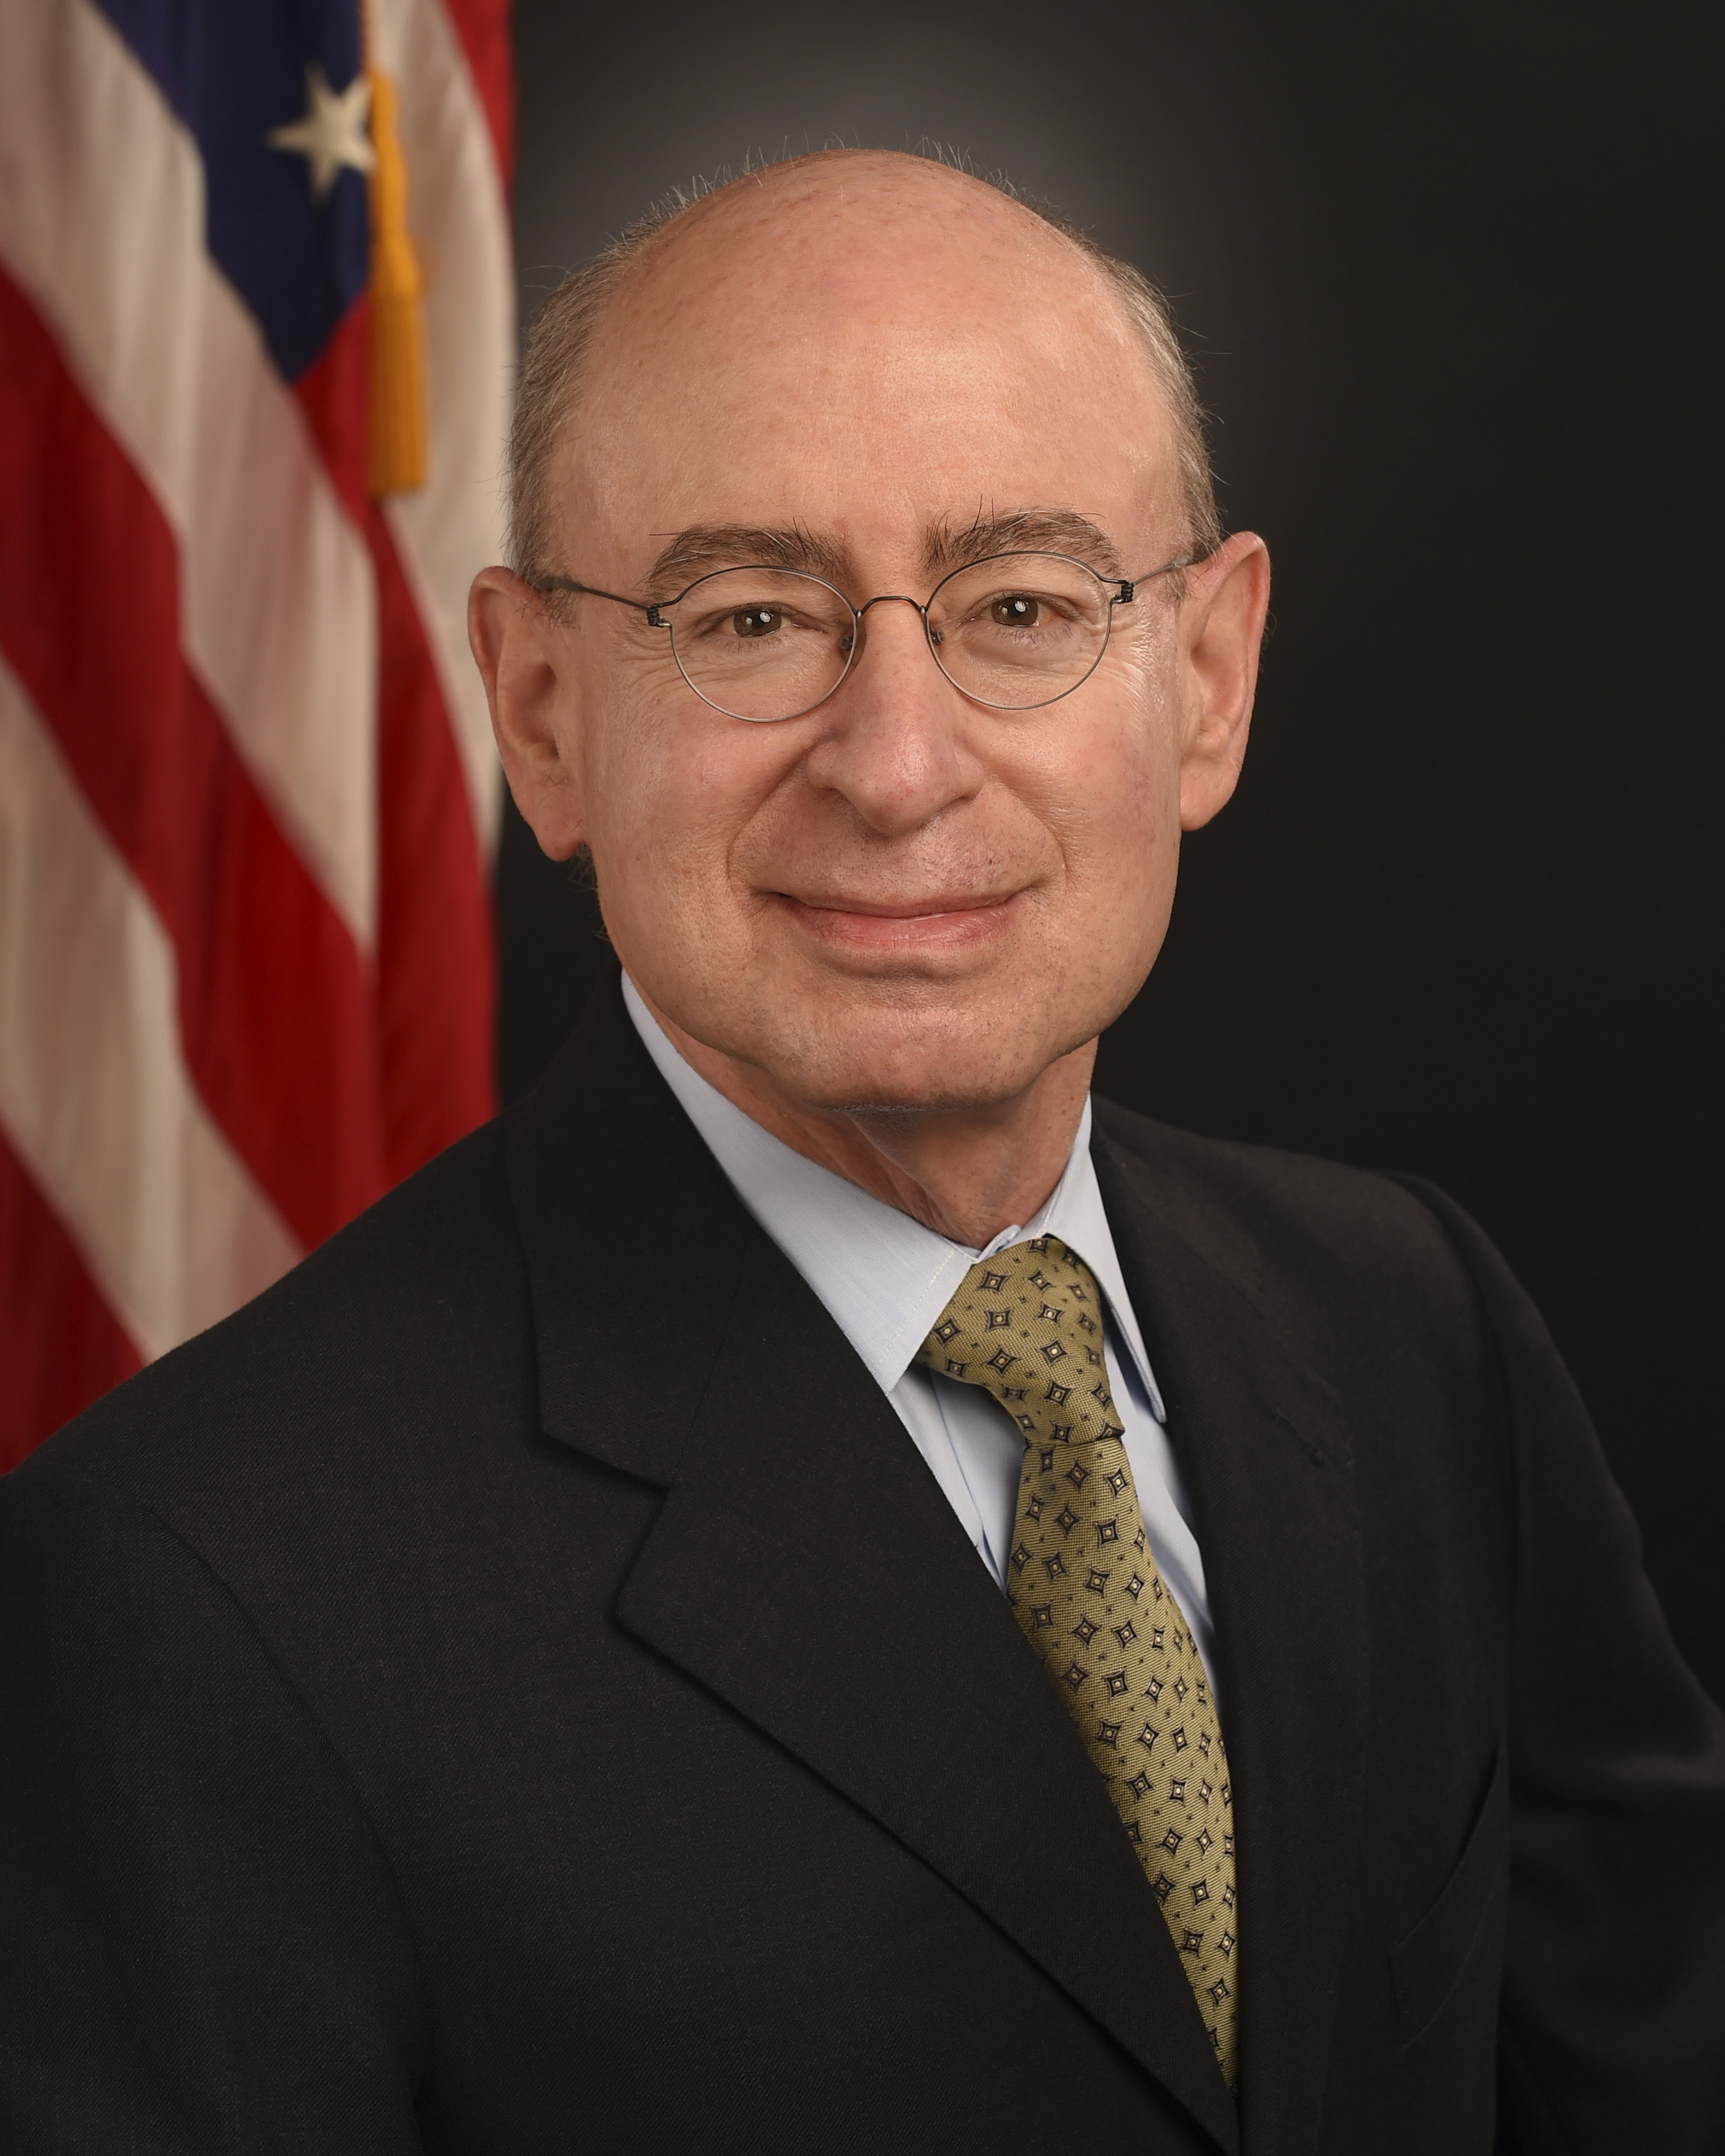 Daniel R. Levinson American government official